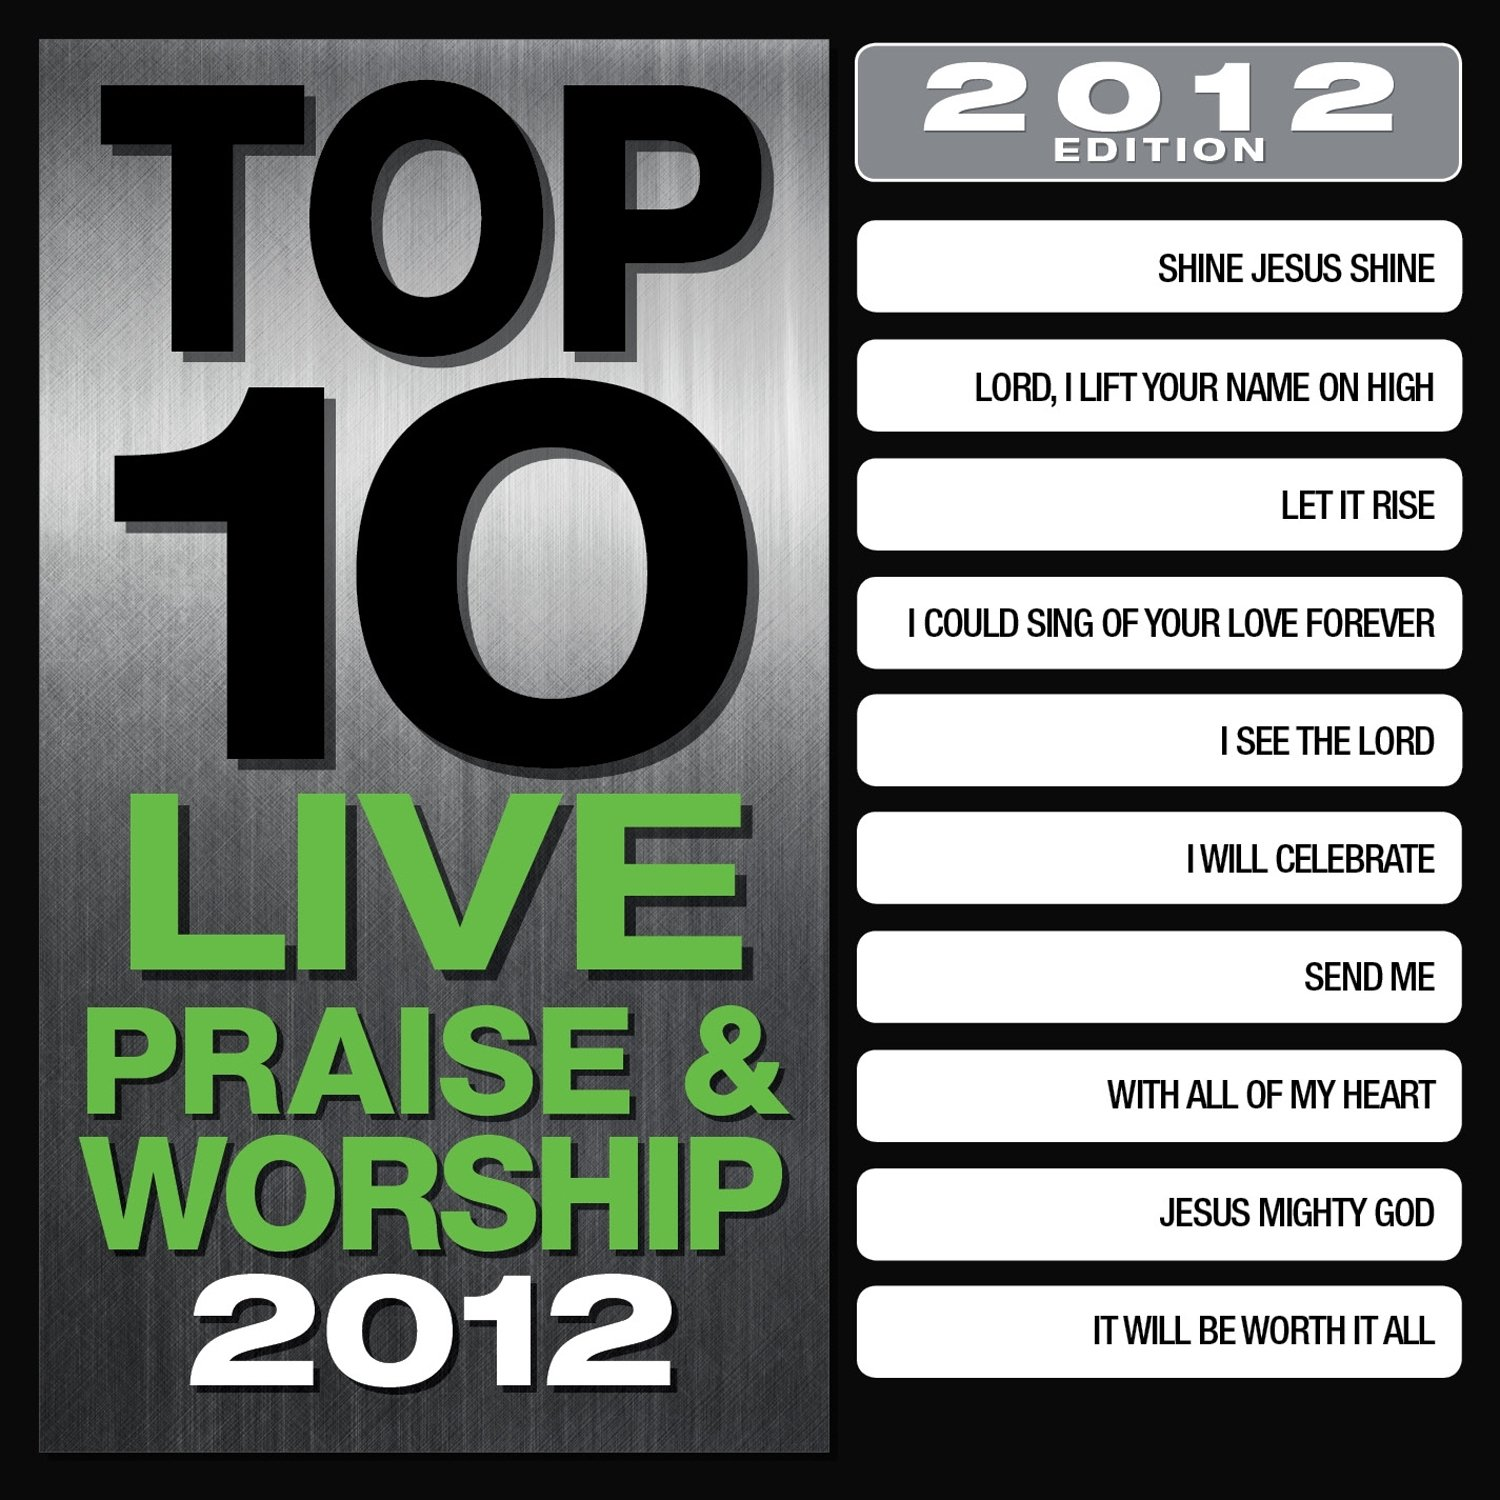 Top 10 Live Praise & Worship Songs 2012 by Isa/Isa61.Com